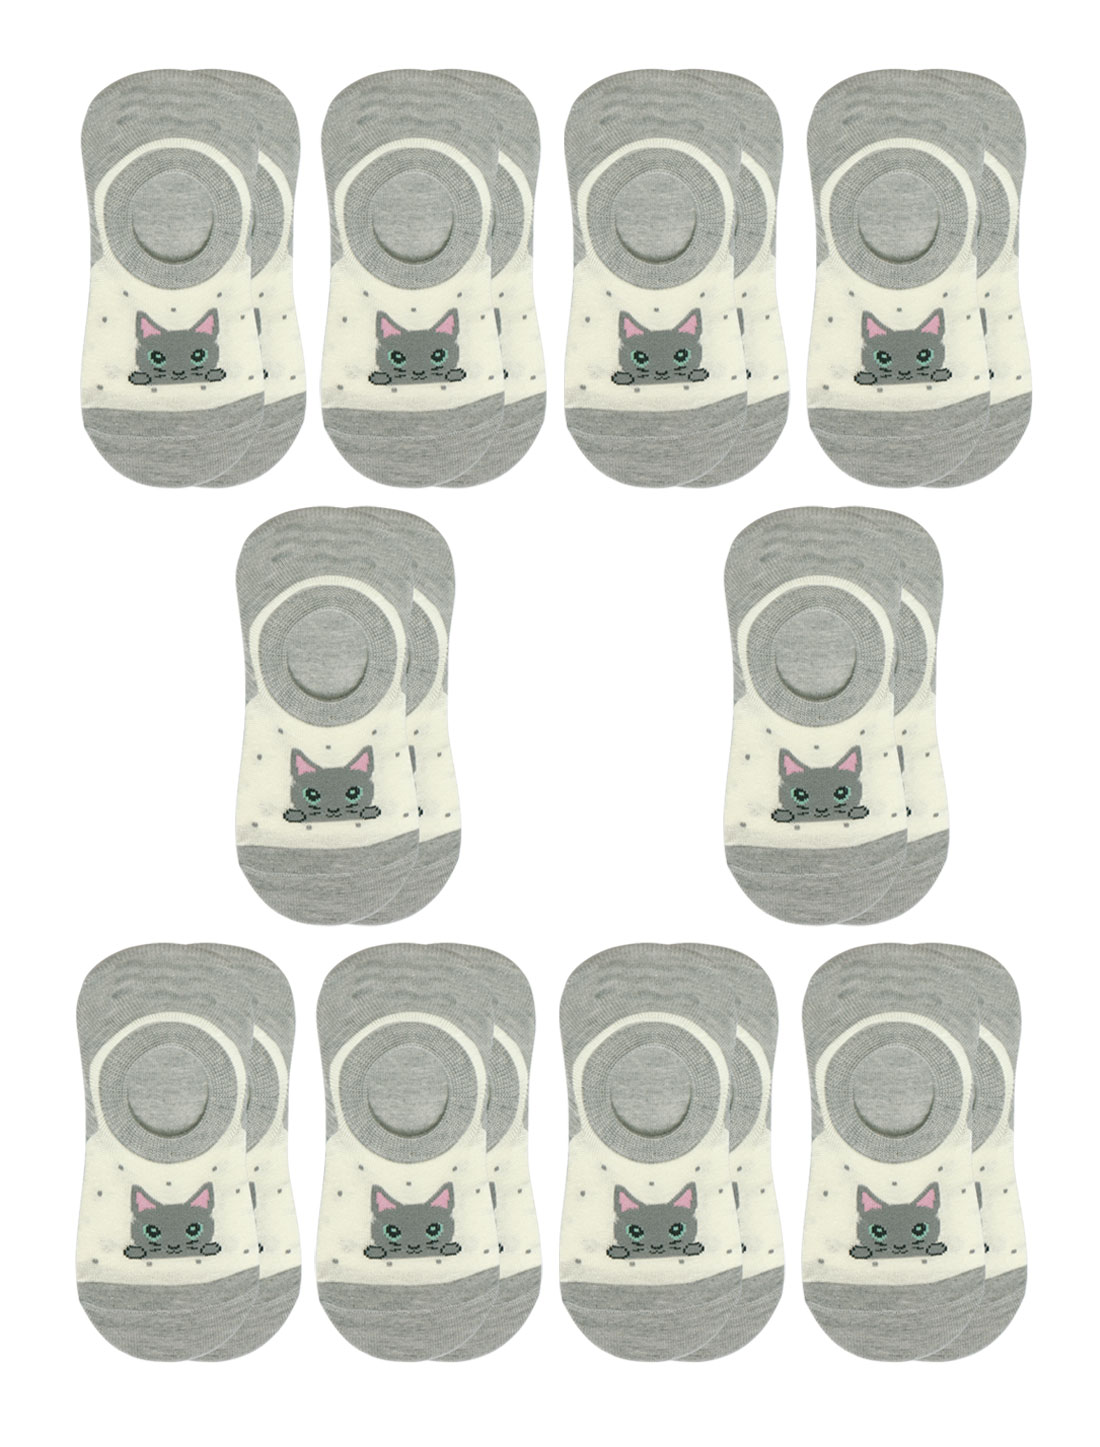 Girls Cat Letter Print Low Cut Elastic Cuffs Short Socks 10 Pairs Gray 7-9